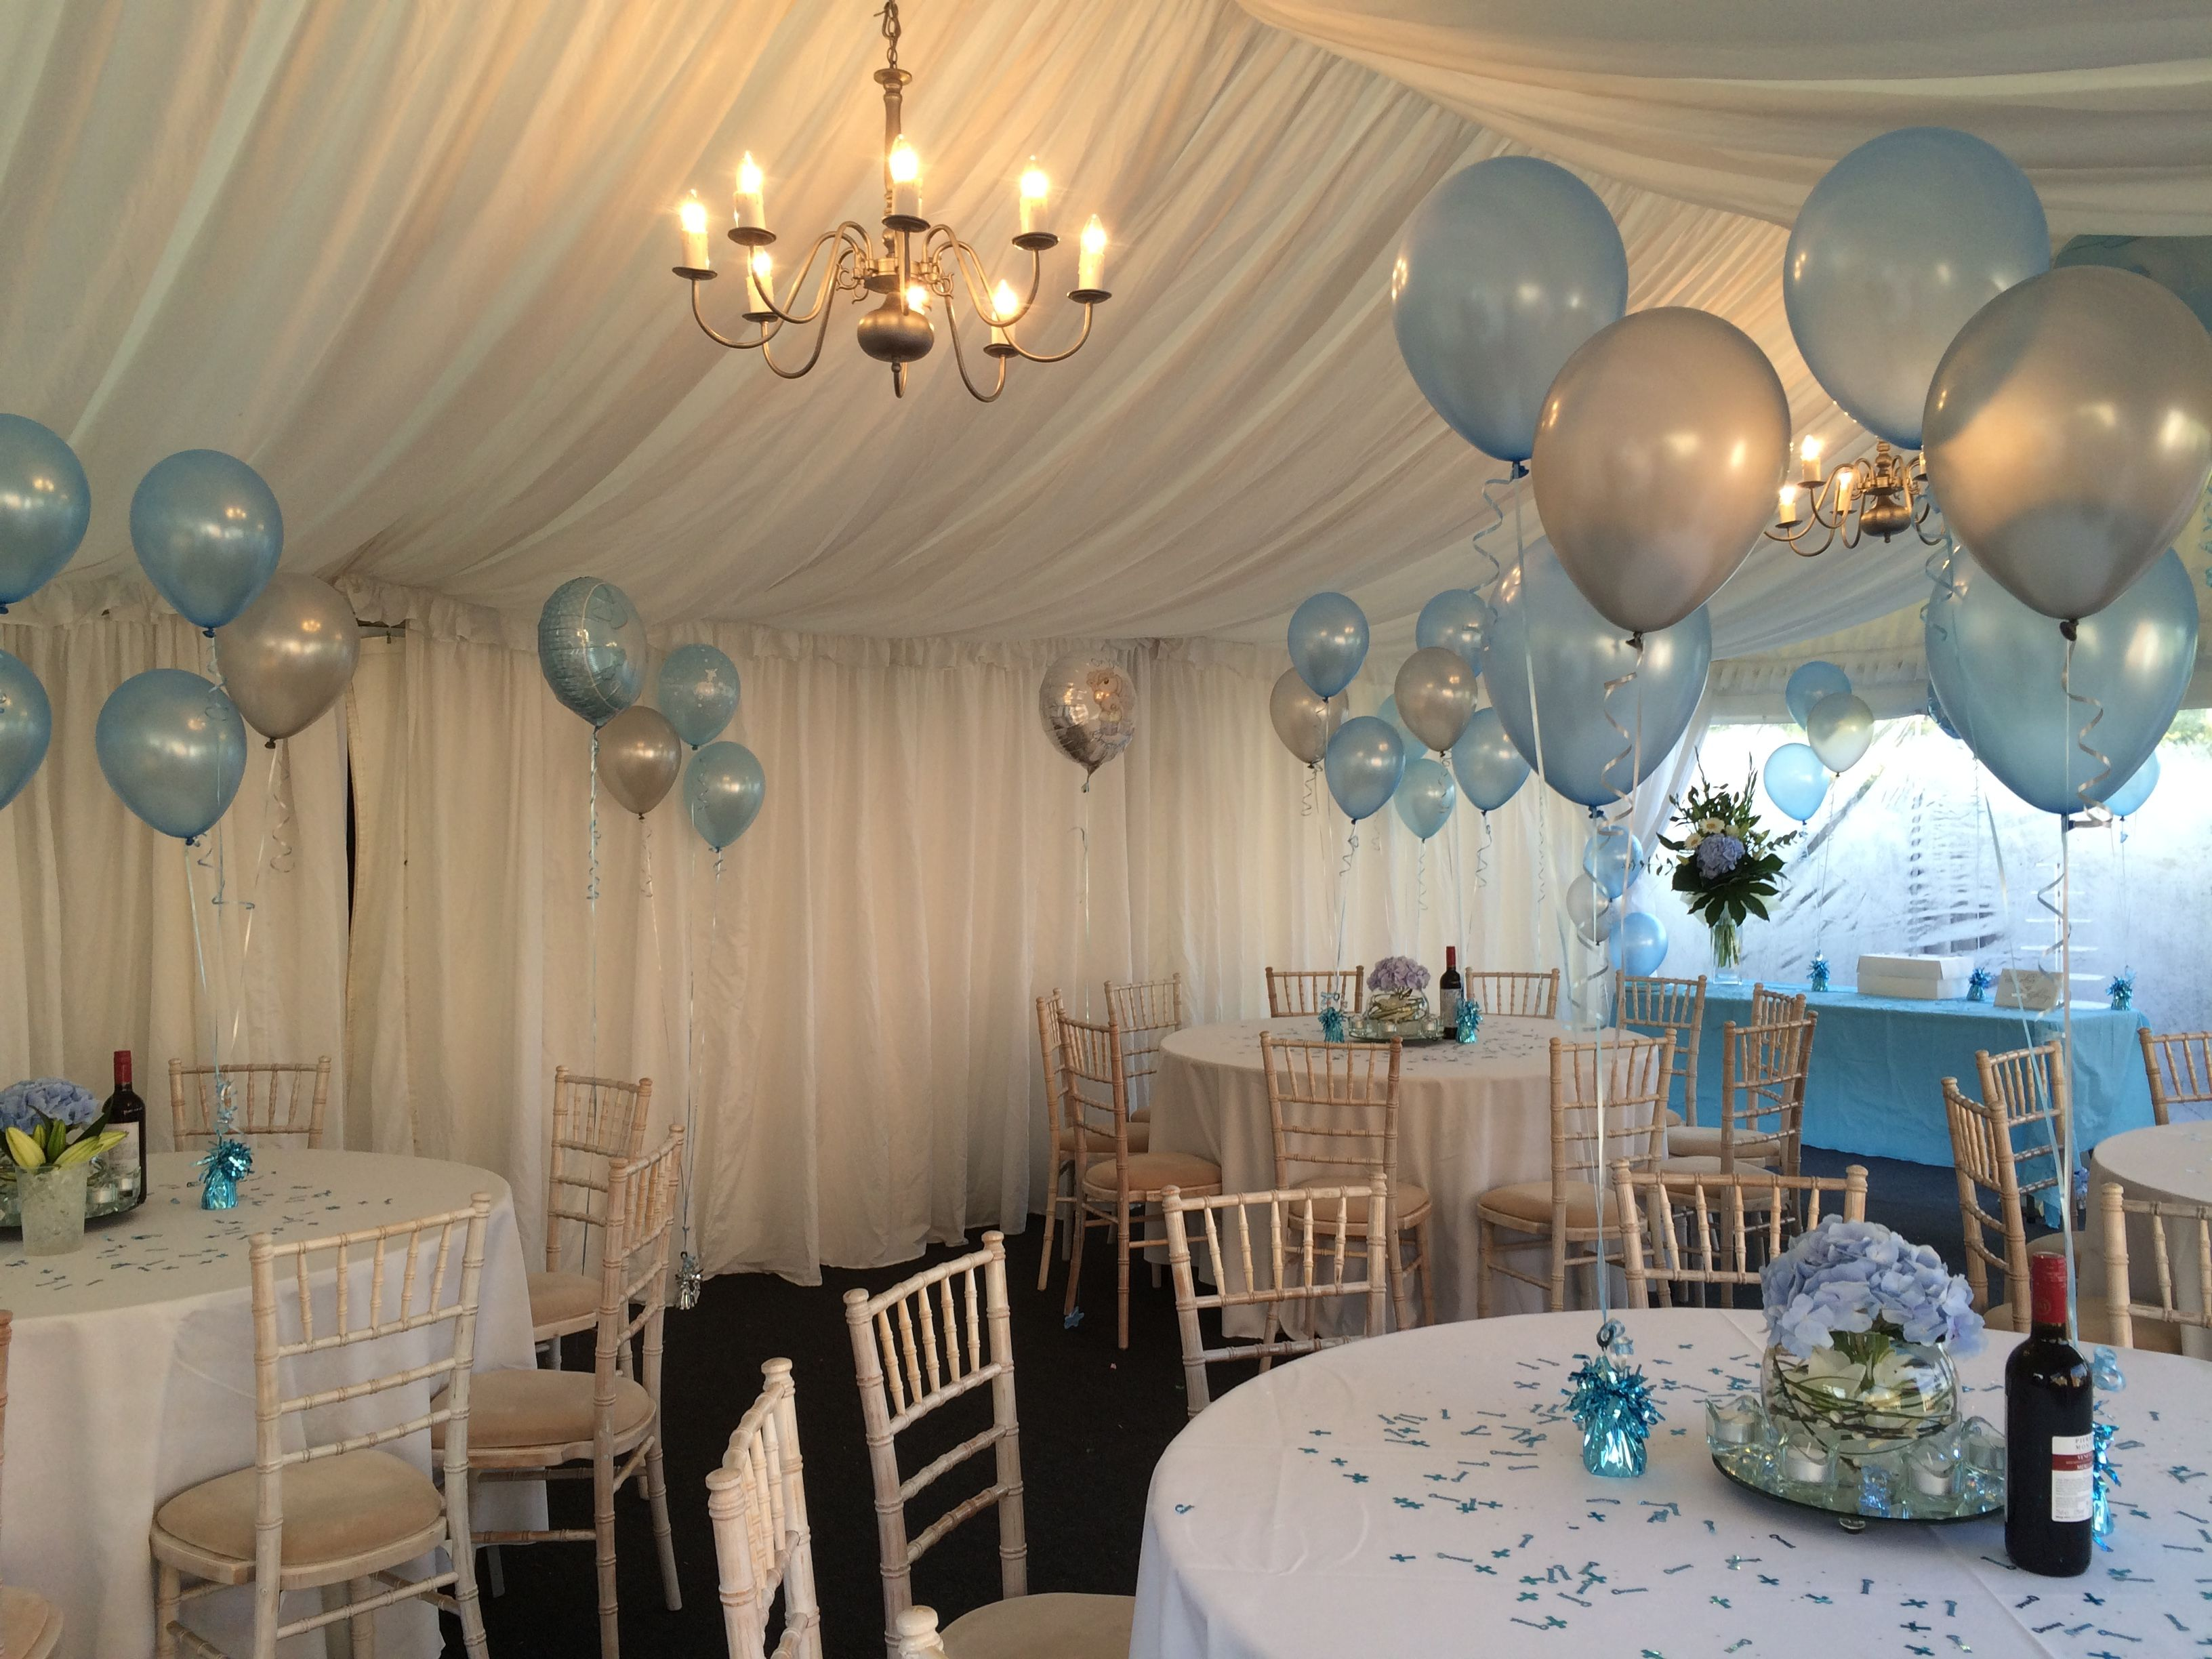 Complementary Floor And Table Balloon Decorations All Ready For The Christening Of A Love Baptism Party Boy Baptism Decorations Boy Boy Christening Decorations